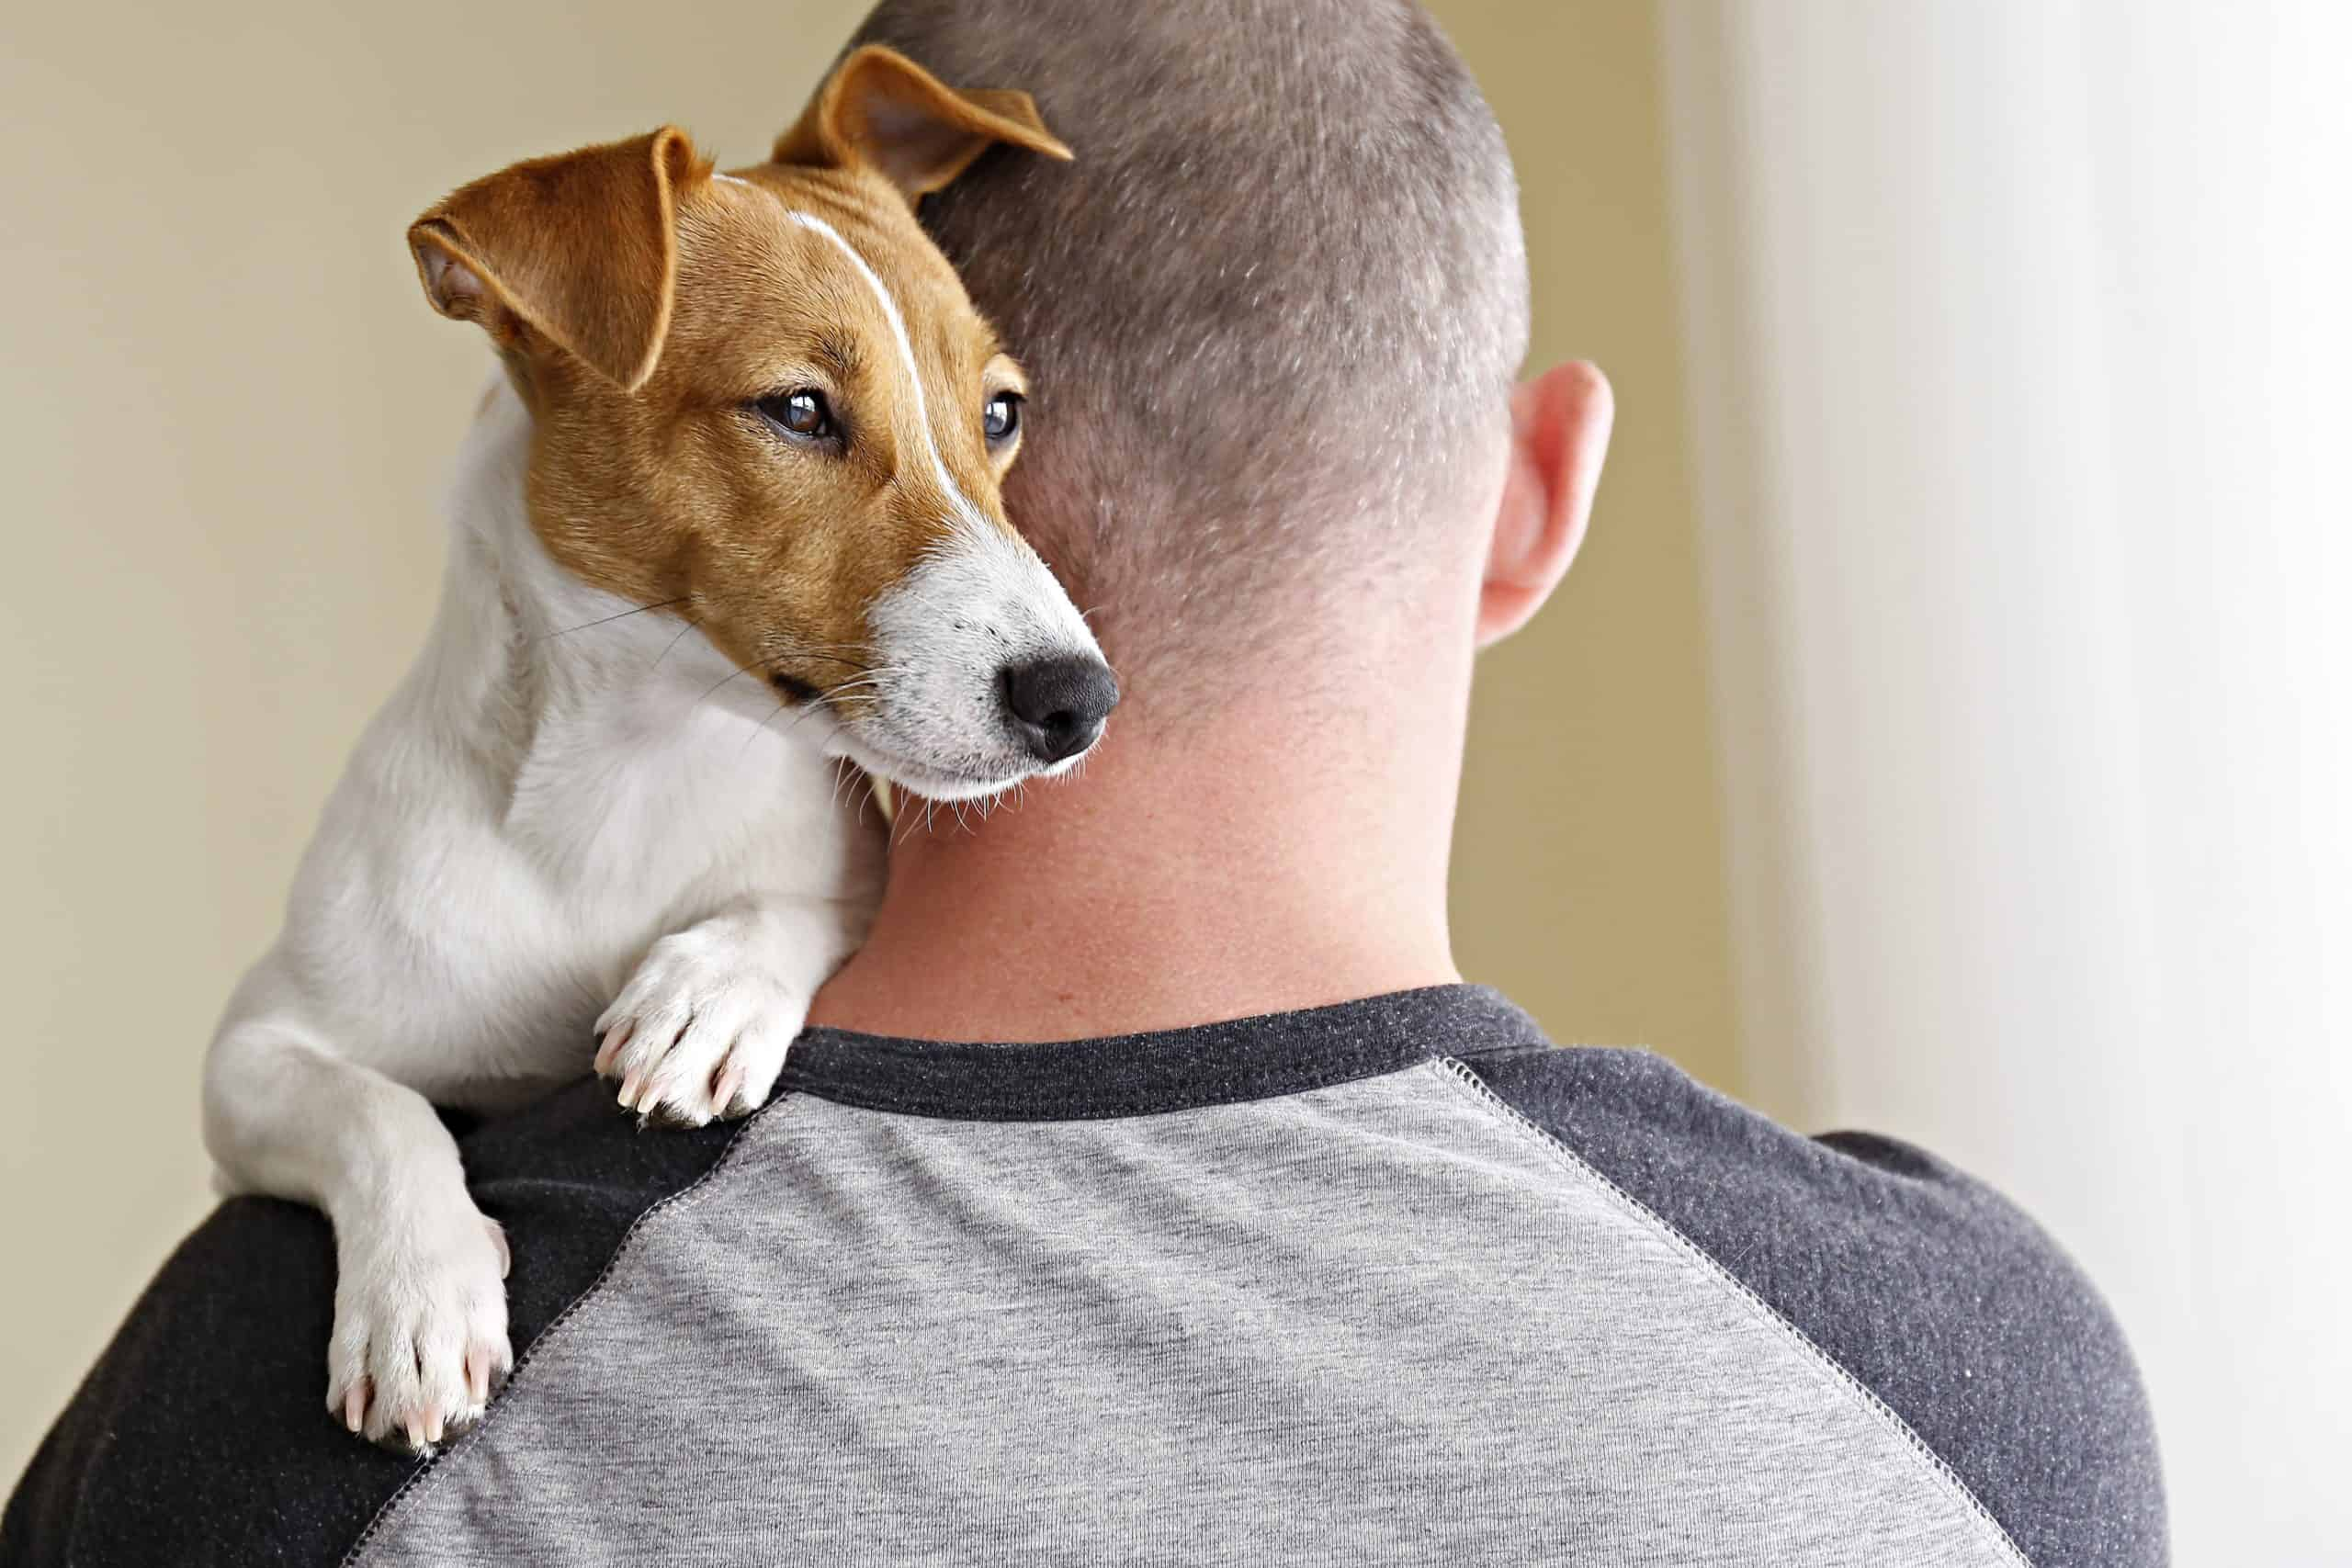 Man cuddles Jack Russell Terrier. If your doctor determines you qualify, he'll write a letter or ESA certificate to recognize your dog as an emotional support companion.